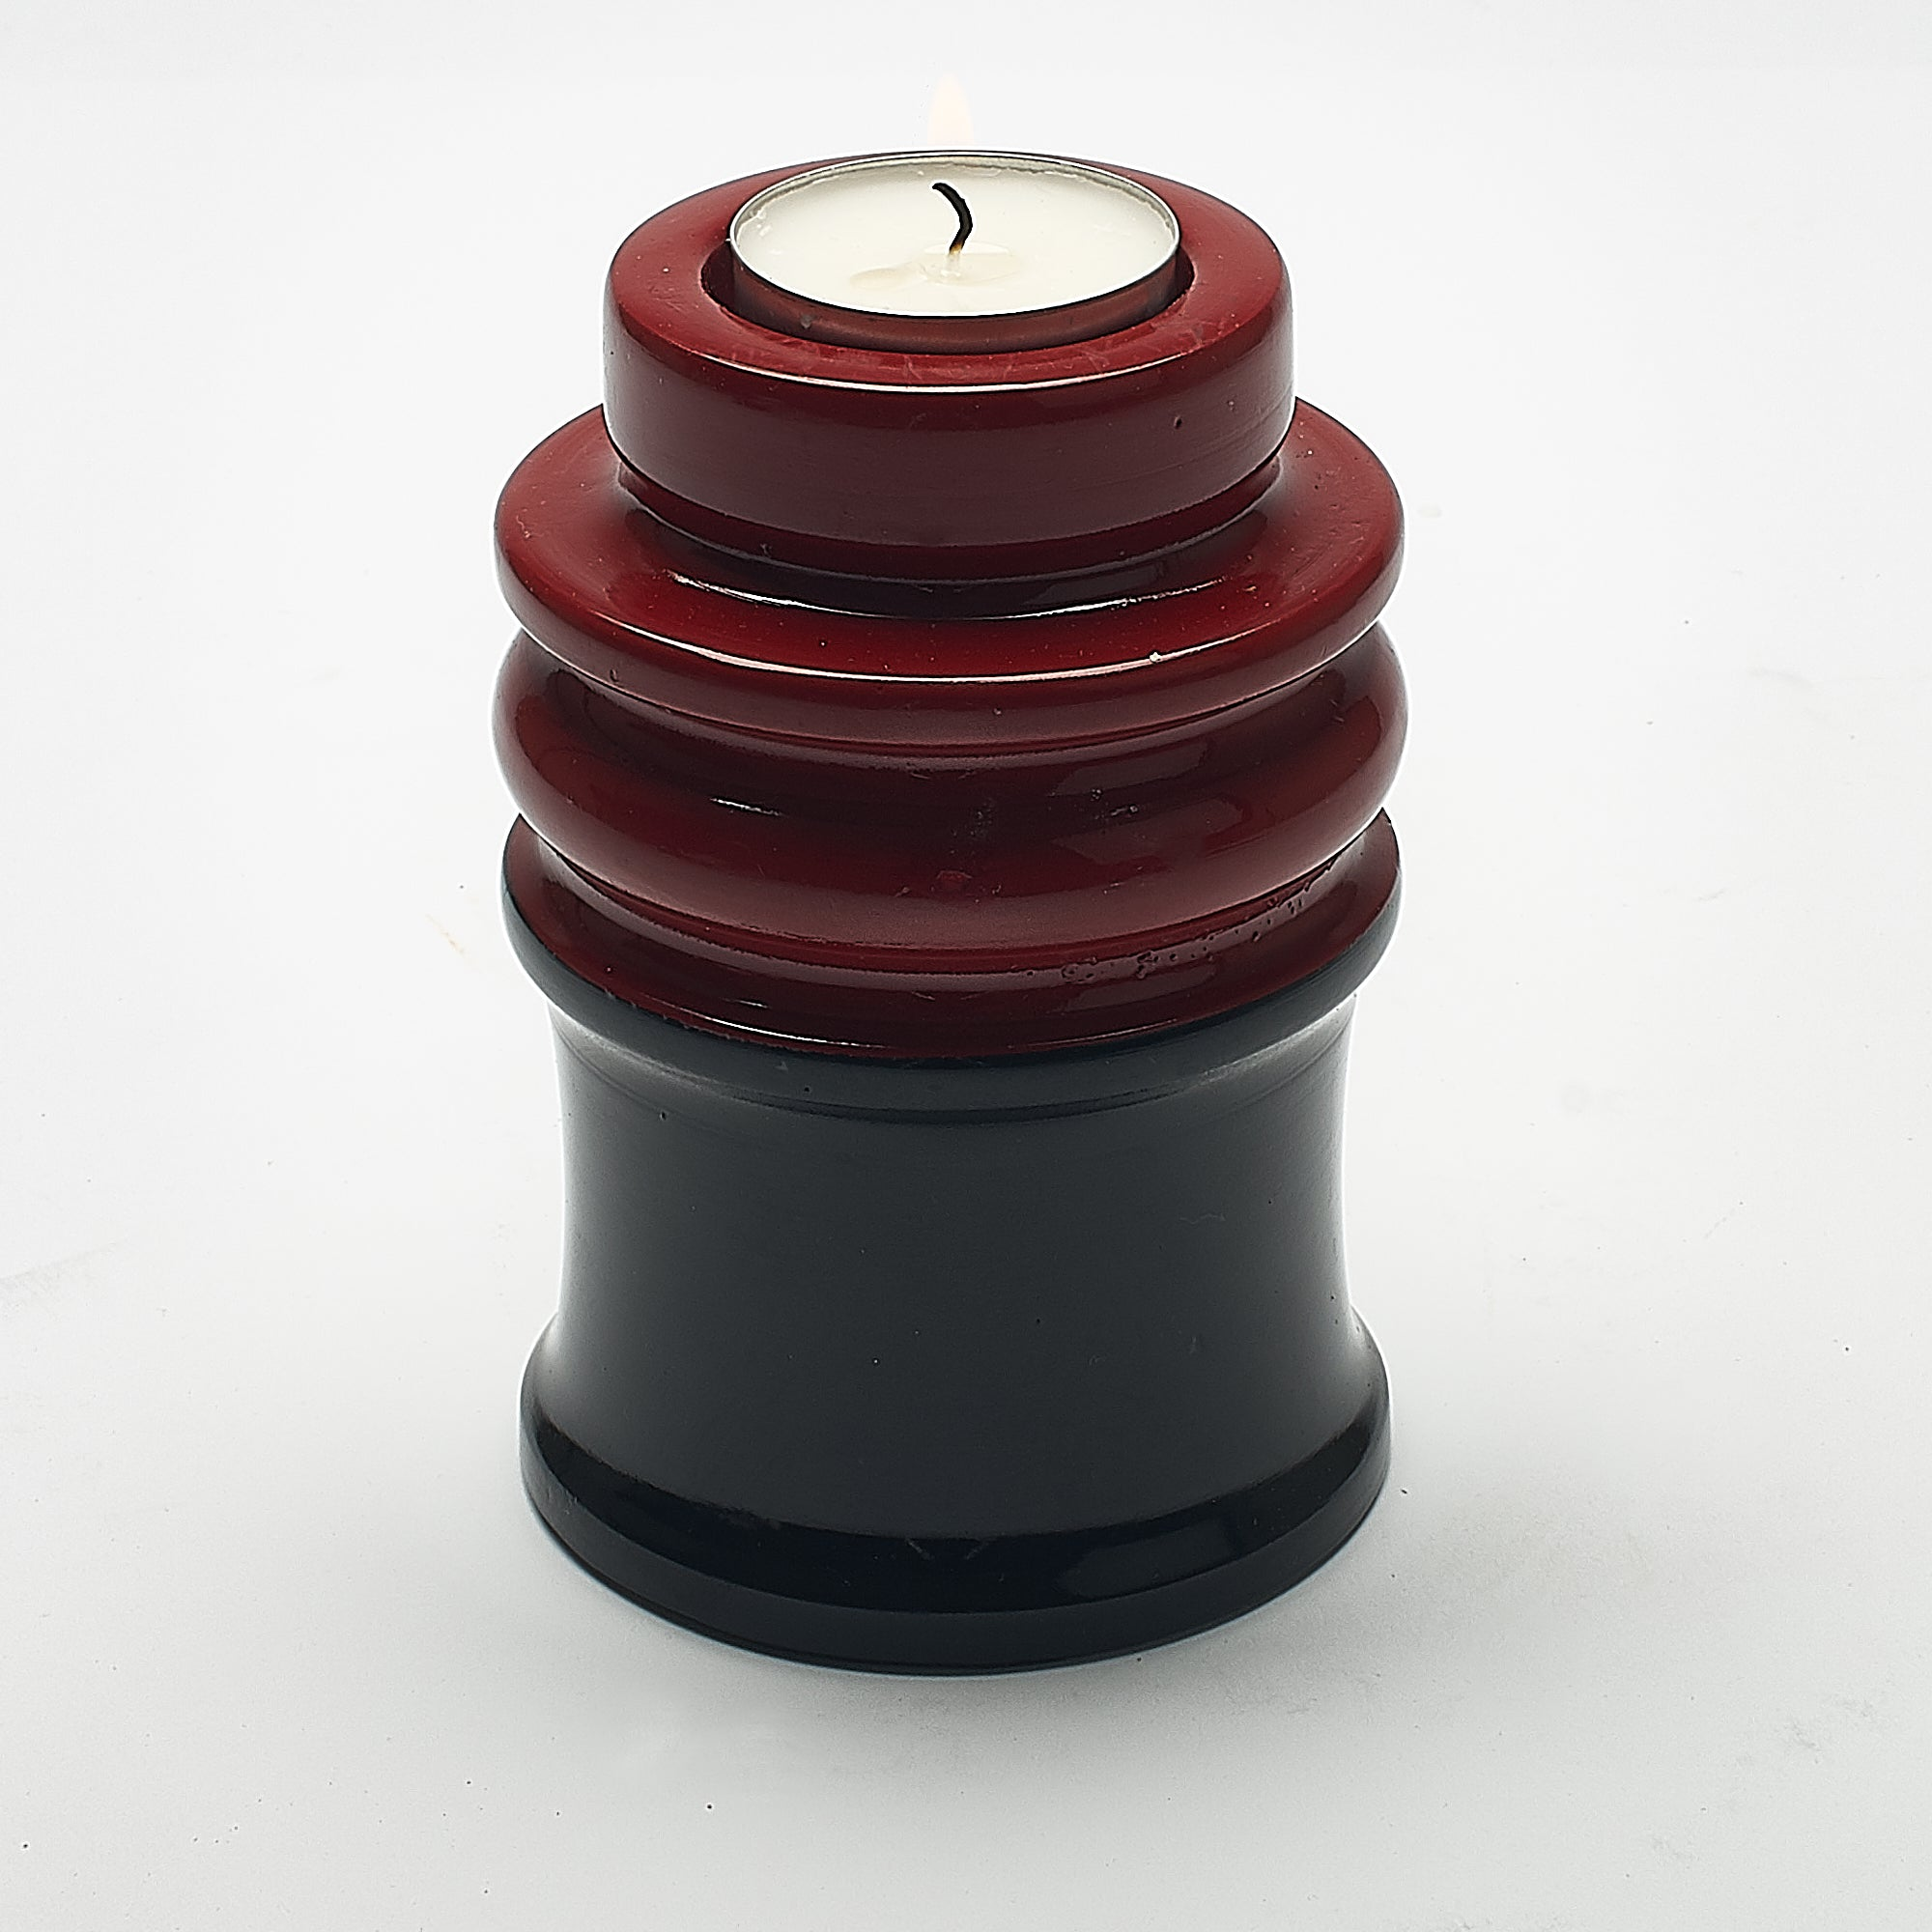 Cremation Urn - Luxury Soho Keepsake with Candle Holder